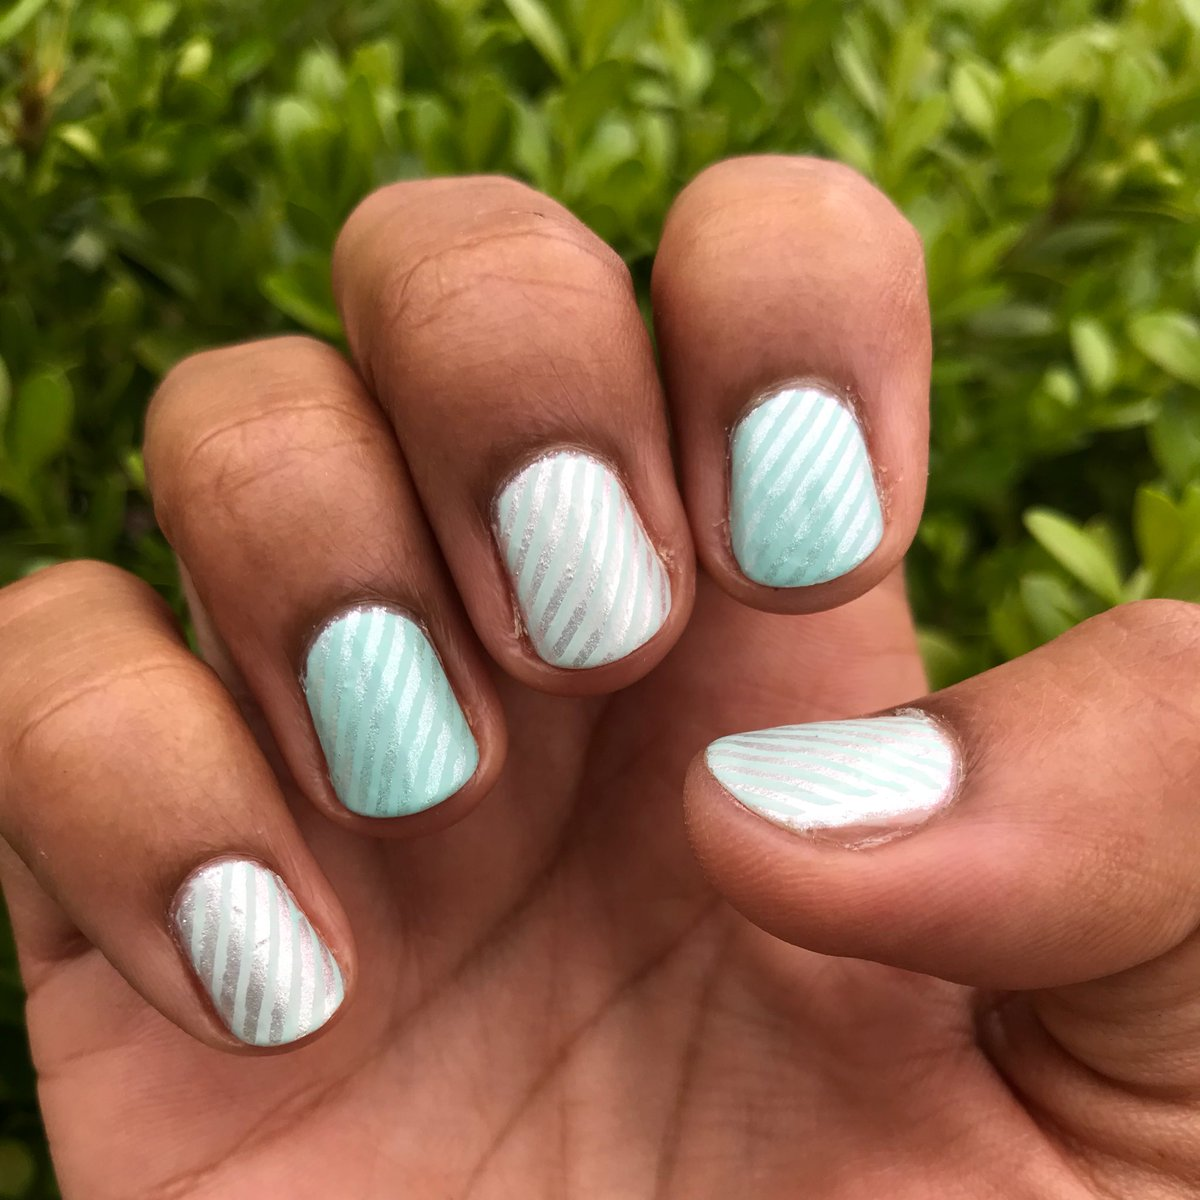 Curlycomedy Nail Art On Twitter Empower Mint And At Sea Level By